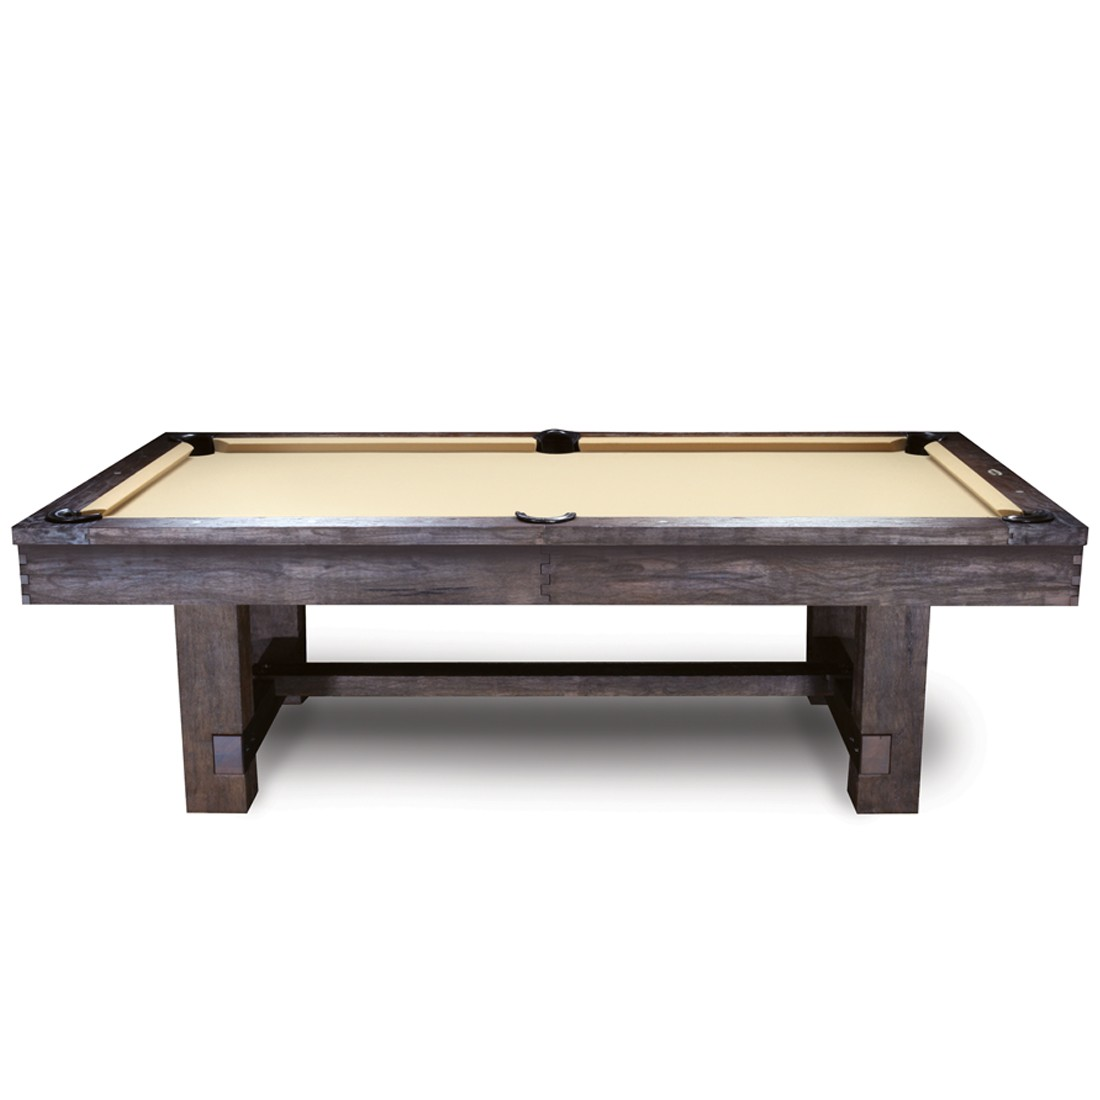 7u0026#39; and 8u0026#39; Reno Pool Table Antique Walnut - GameTablesOnline.com